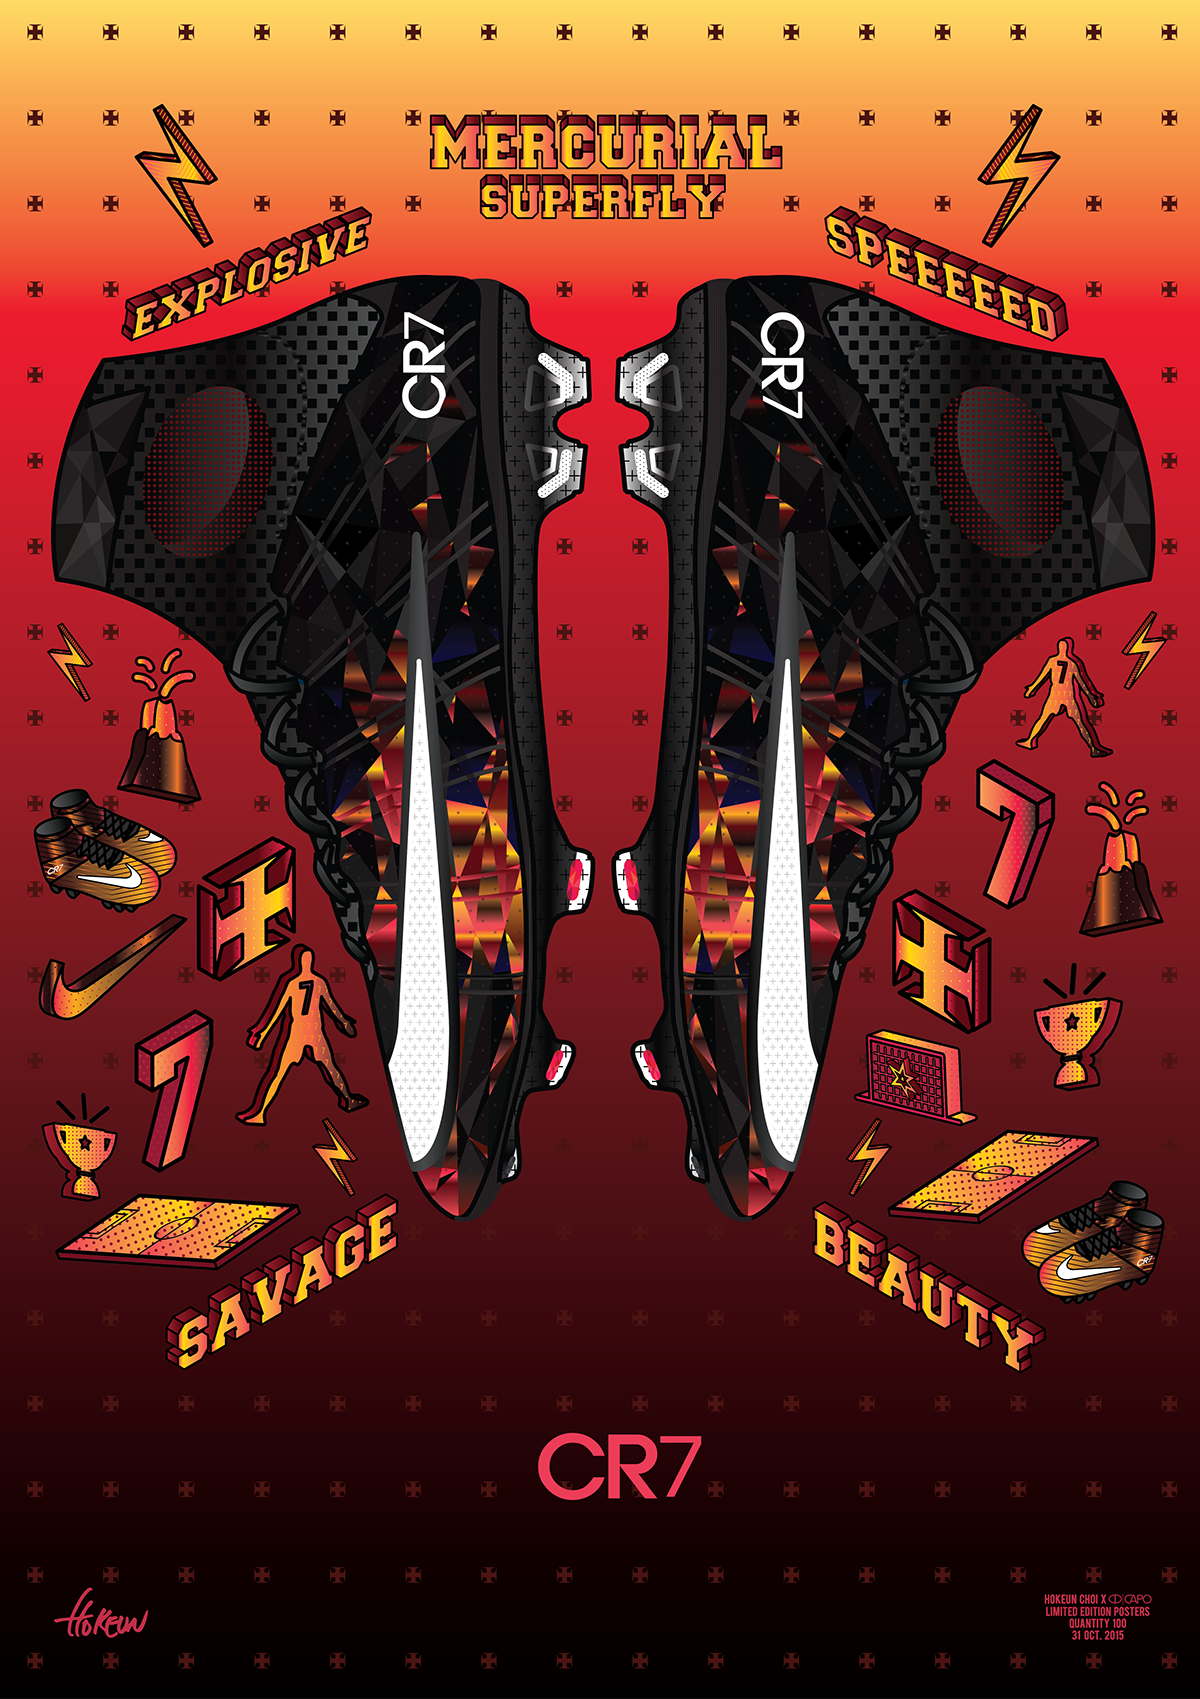 f8e383e658f MERCURIAL SUPERFLY  SAVAGE BEAUTY  POSTER ILLUSTRATION on Behance